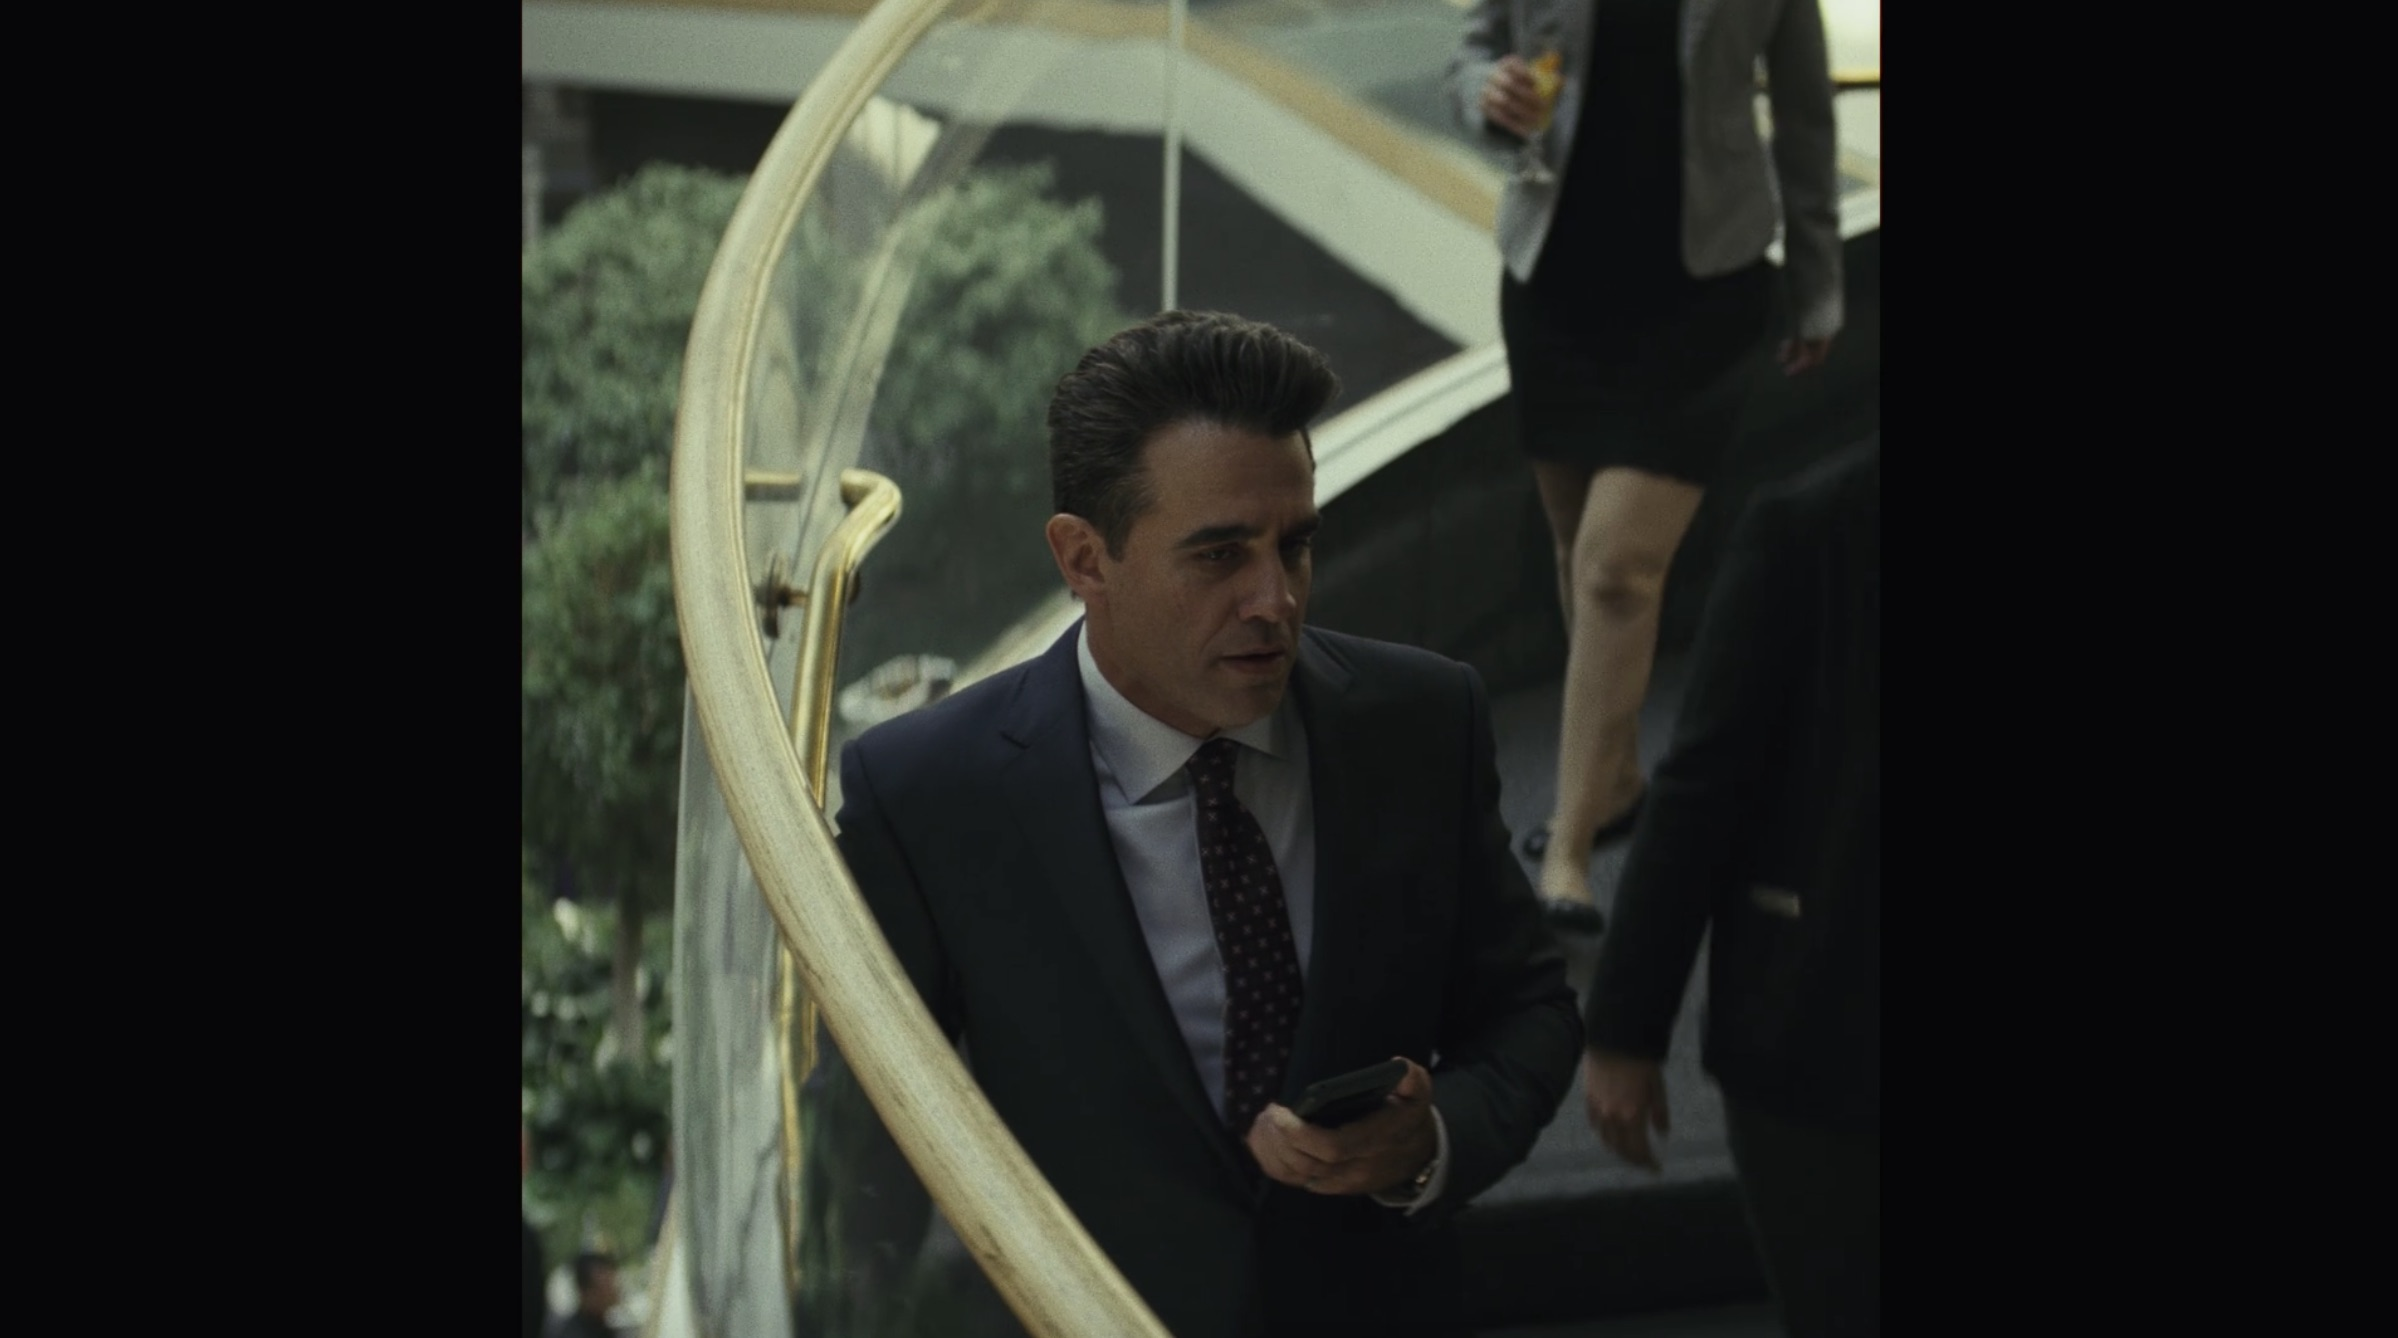 Homecoming - Bobby Cannavale Vertical Framing